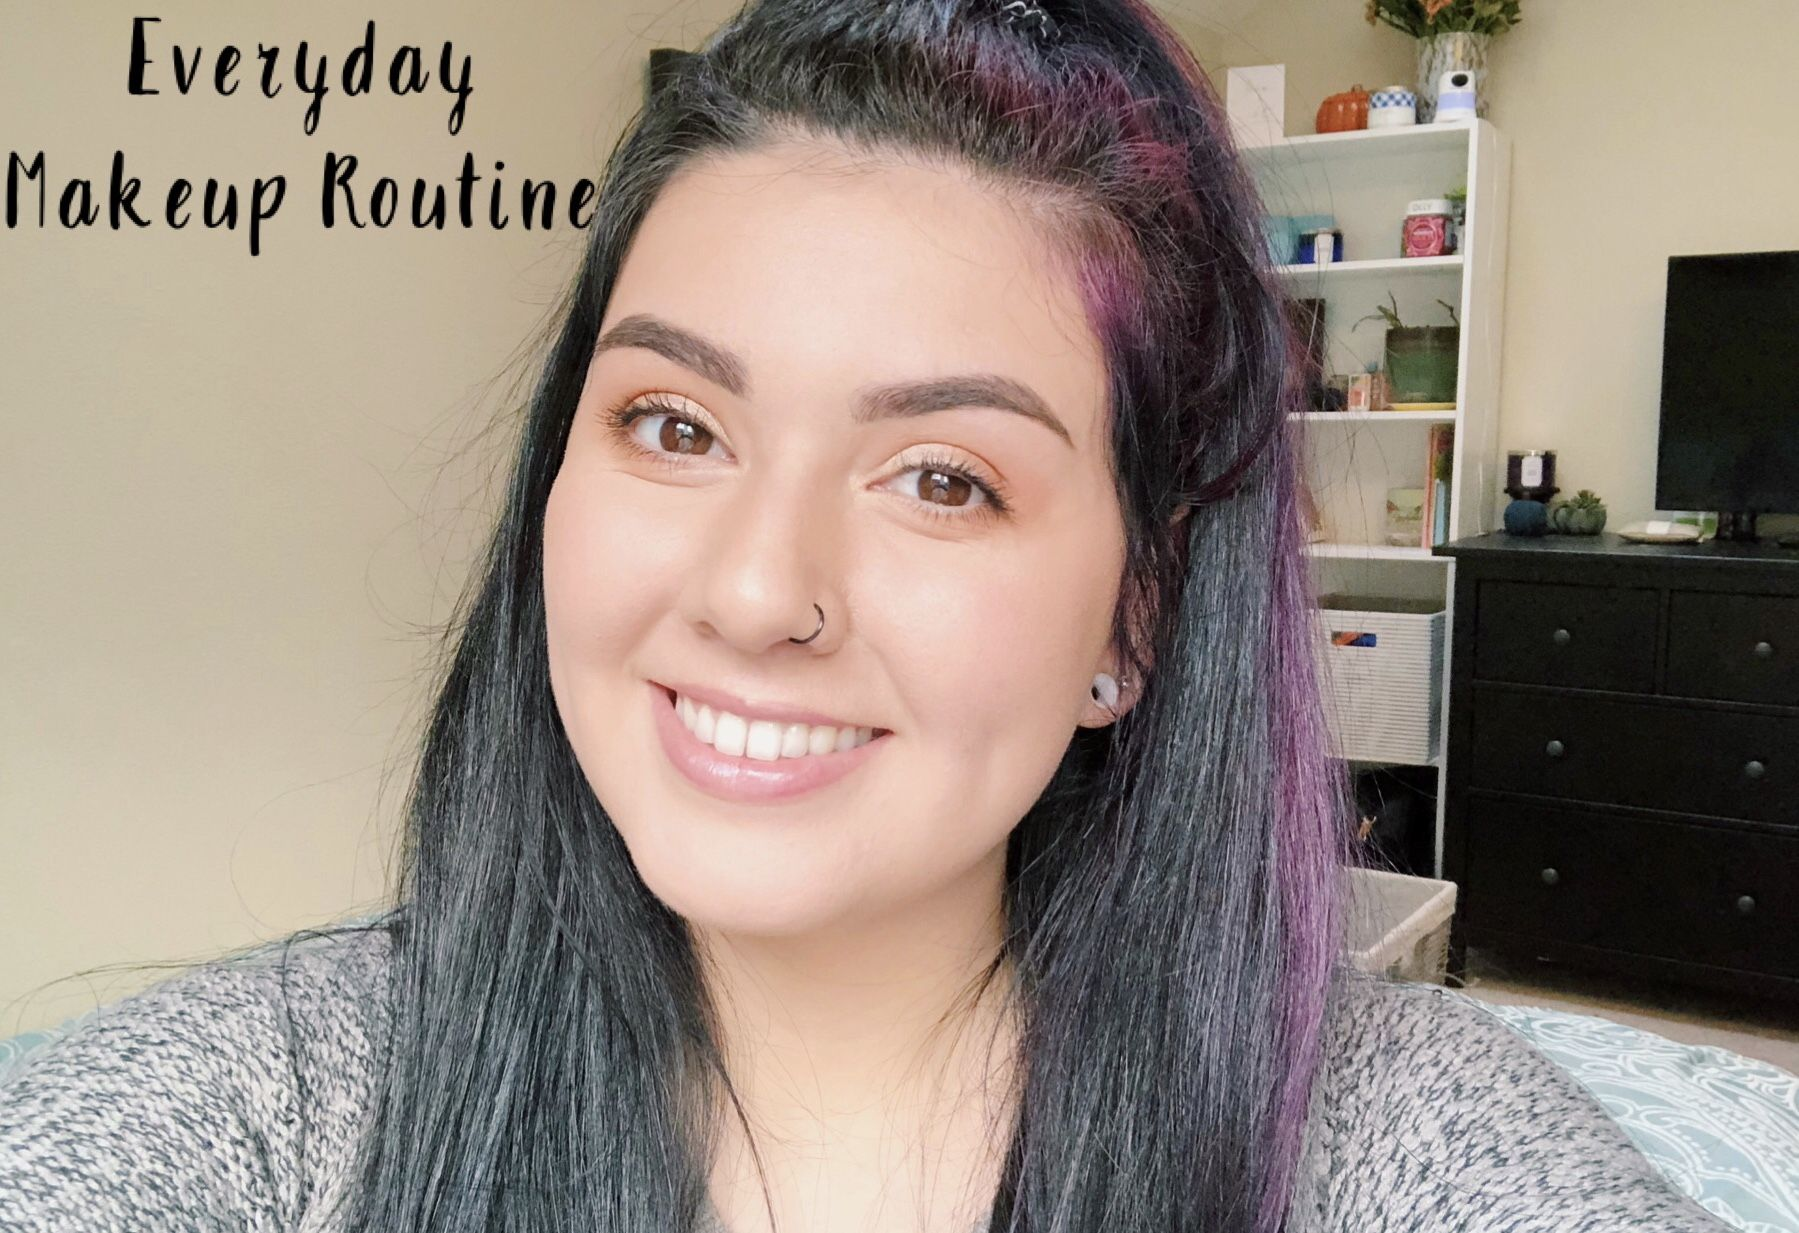 Everyday Makeup Routine Simple makeup looks, Everyday